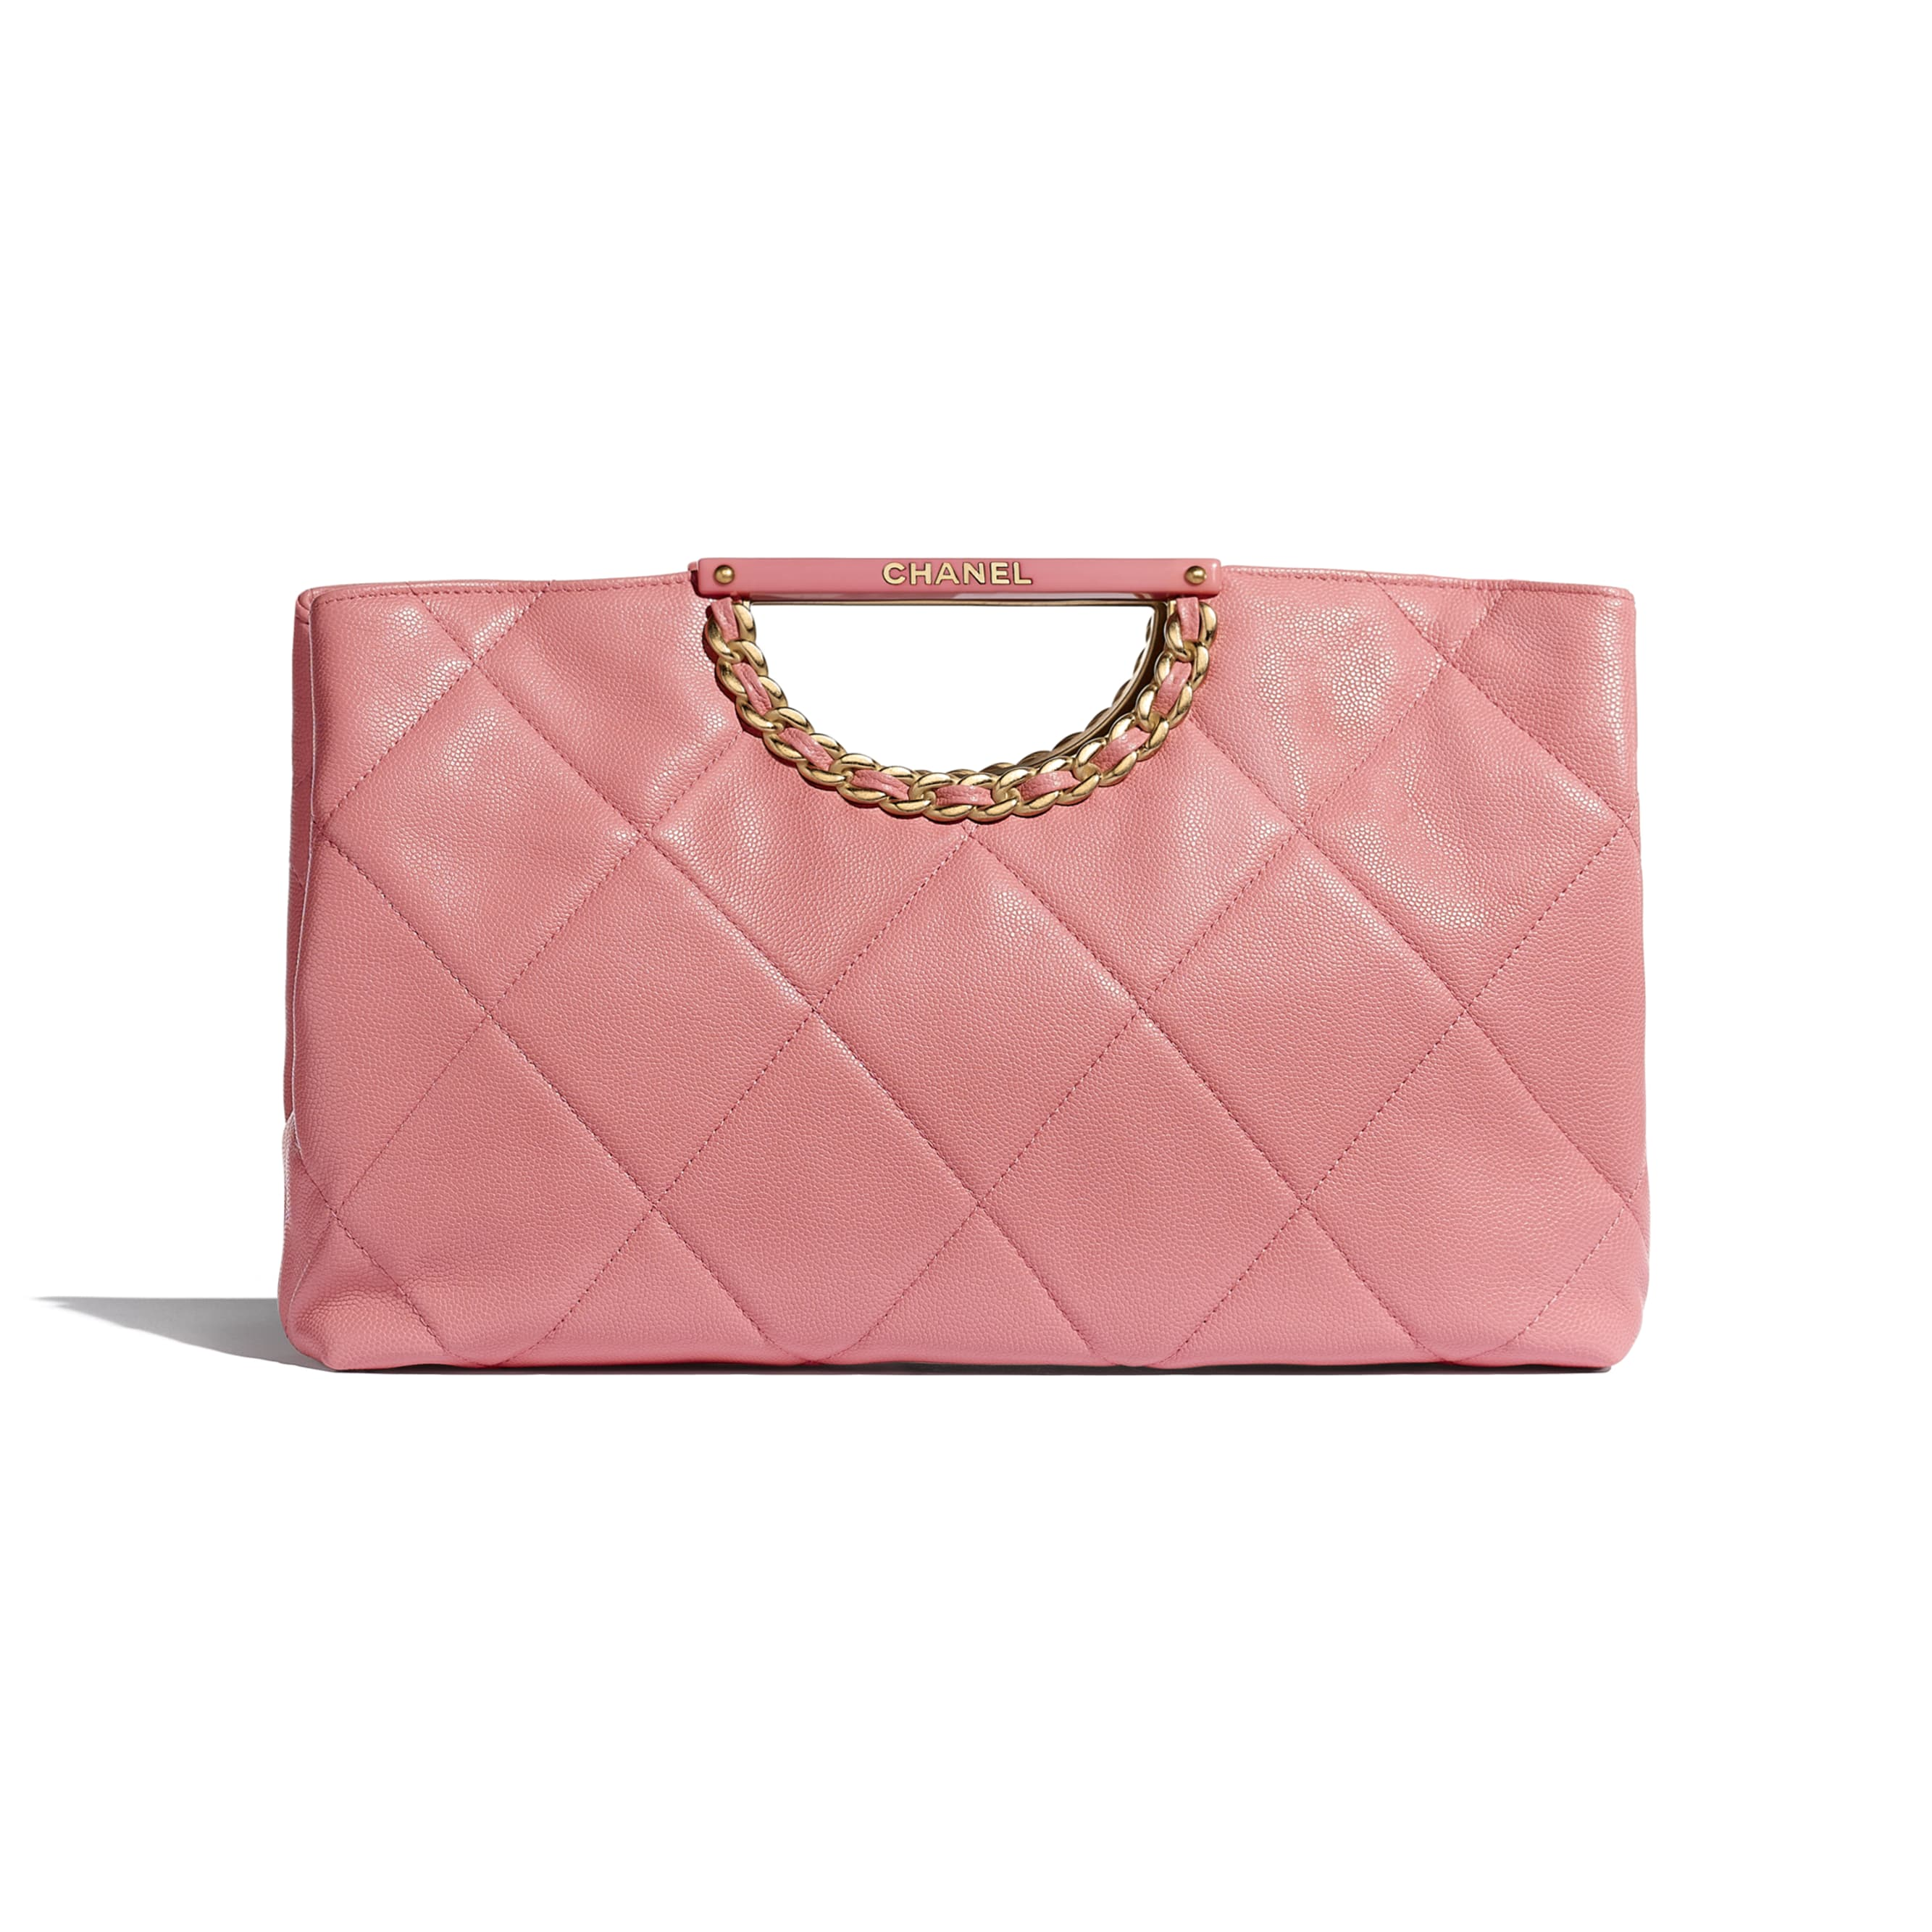 Clutch - Pink - Grained Calfskin & Gold-Tone Metal - Alternative view - see standard sized version